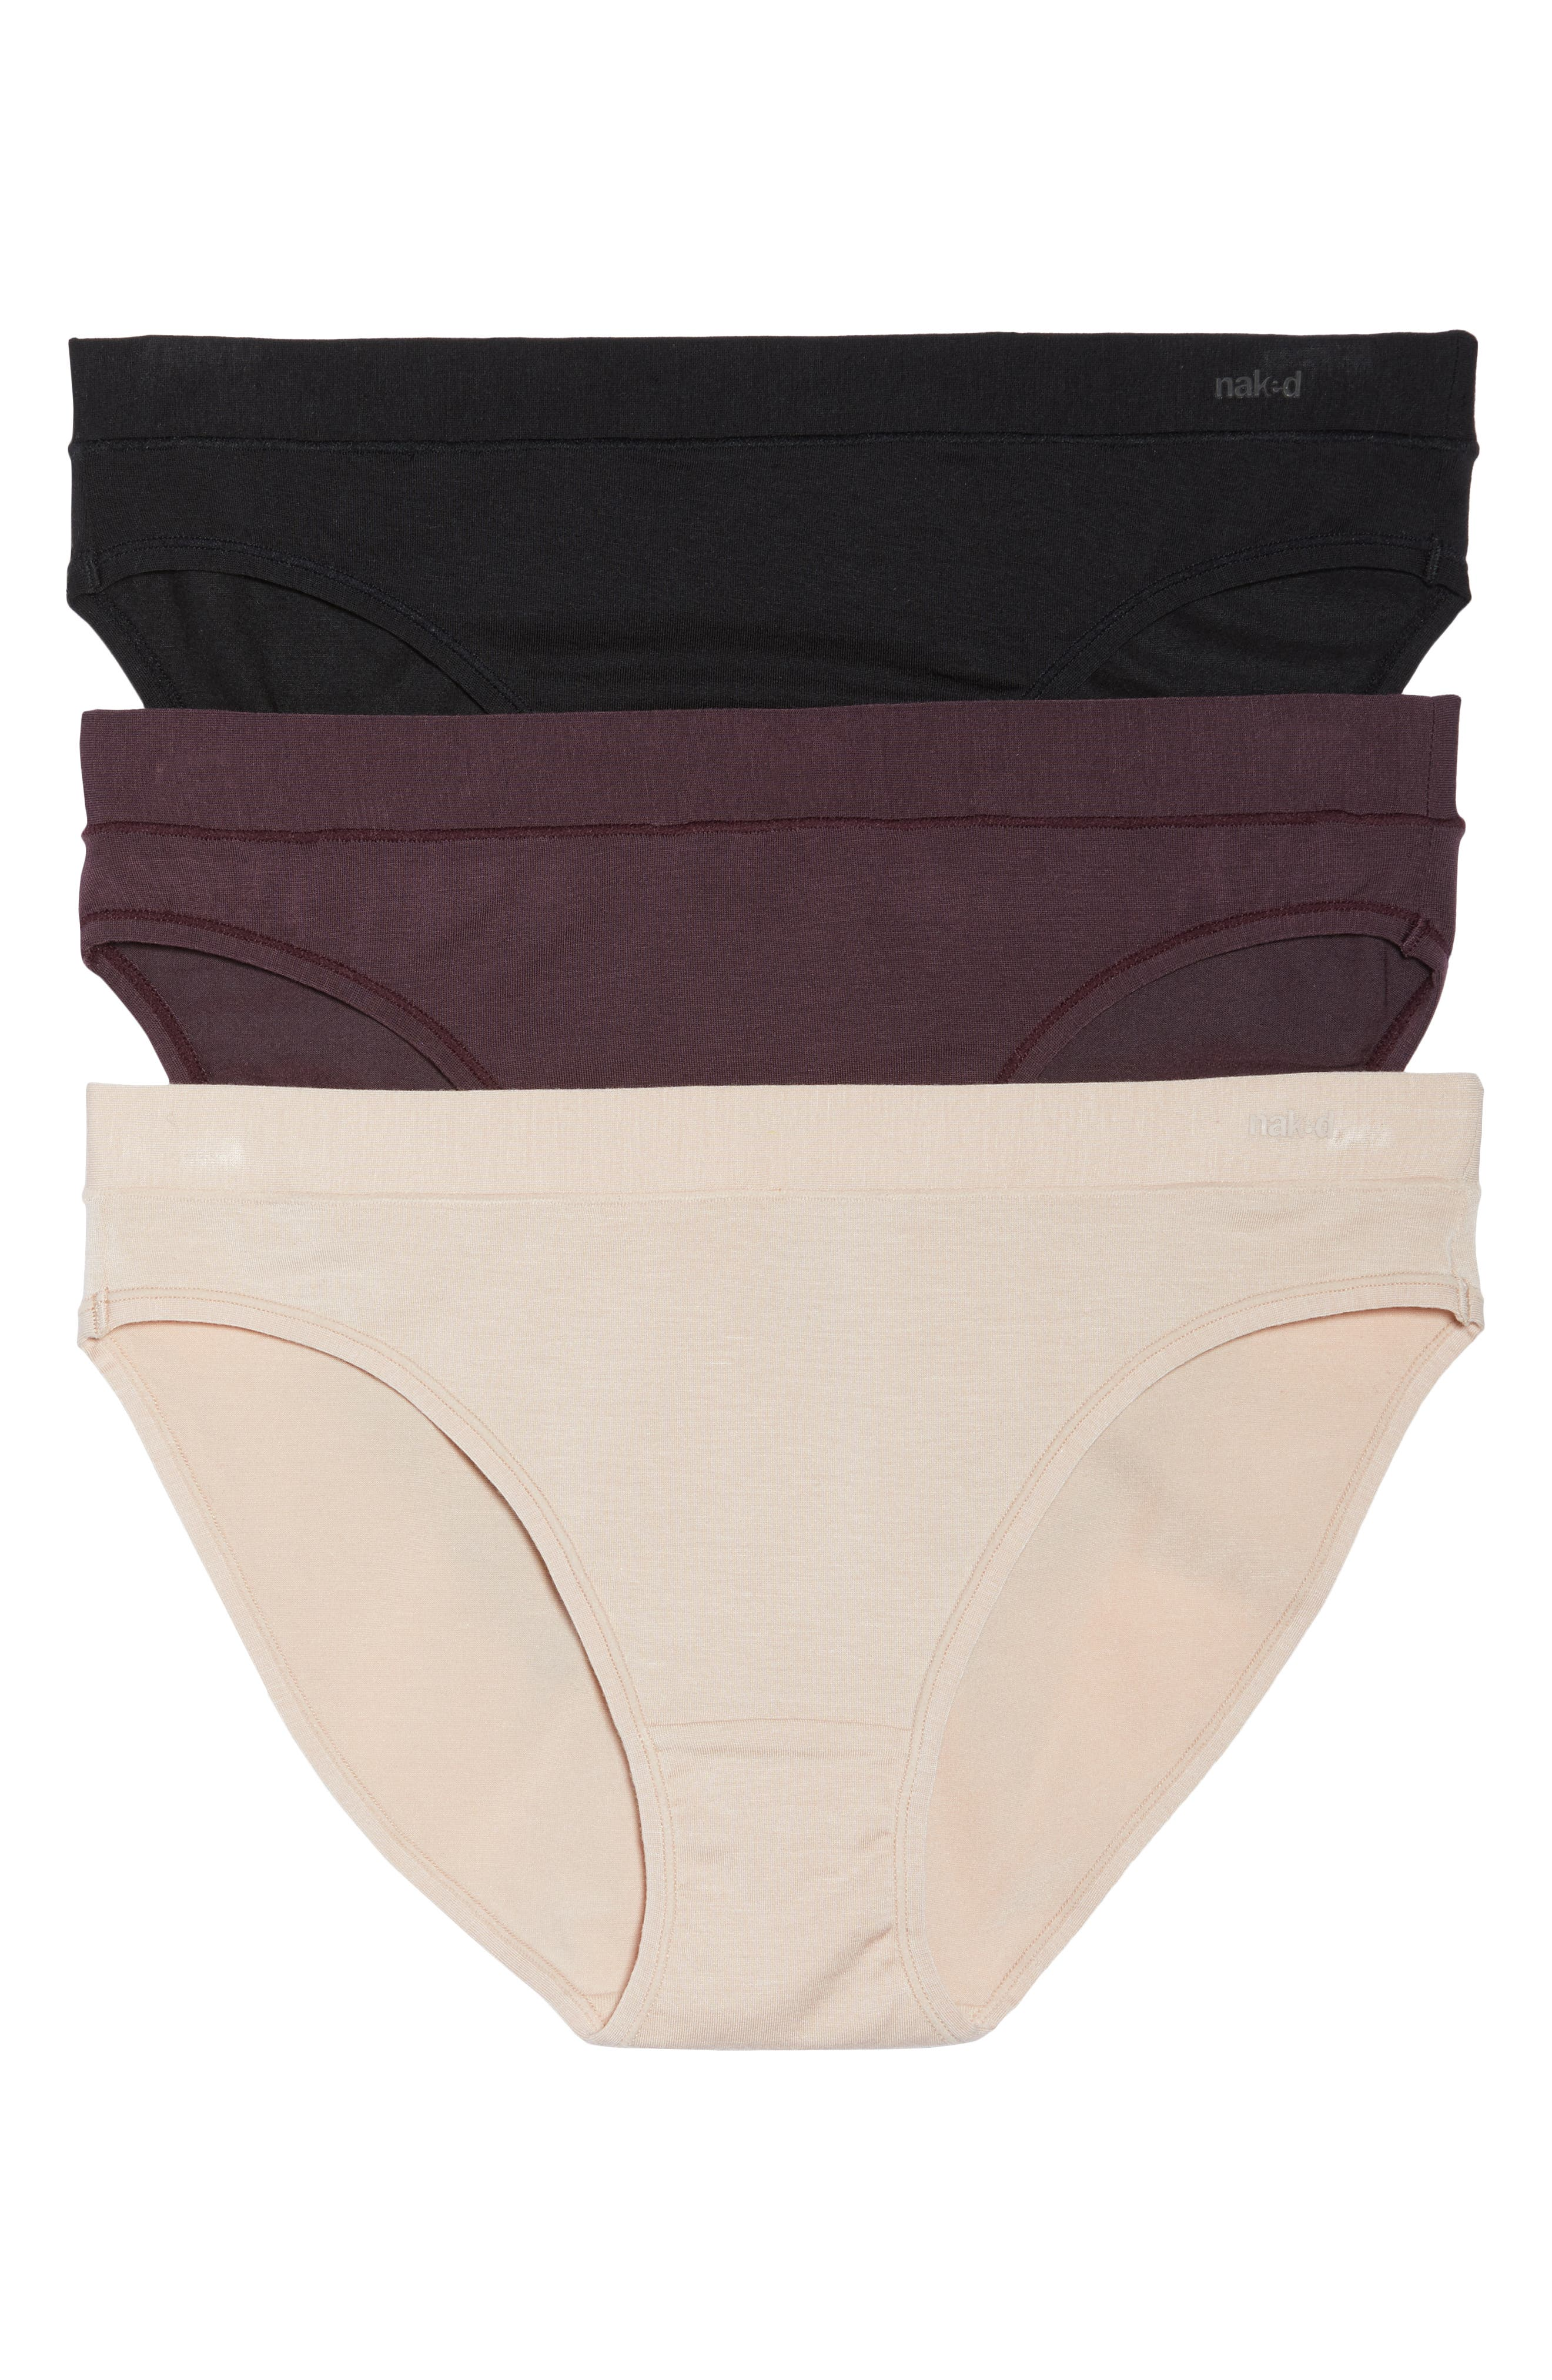 3-Pack Stretch Modal Modern Panties,                         Main,                         color, Barely Pink/Black/Eggplant